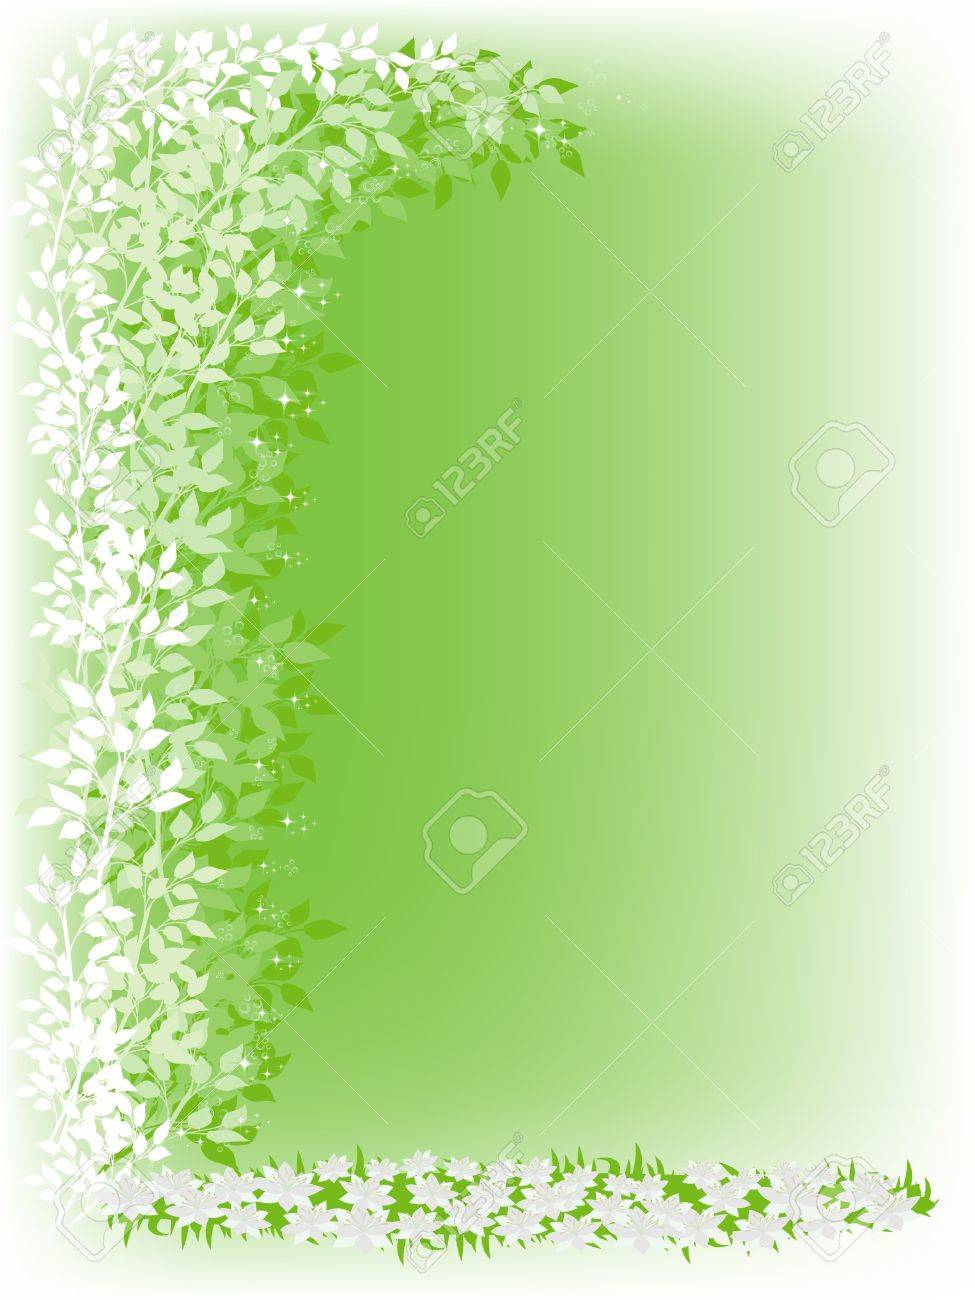 Gentle green background with foliage and white flowers Stock Photo - 6891534